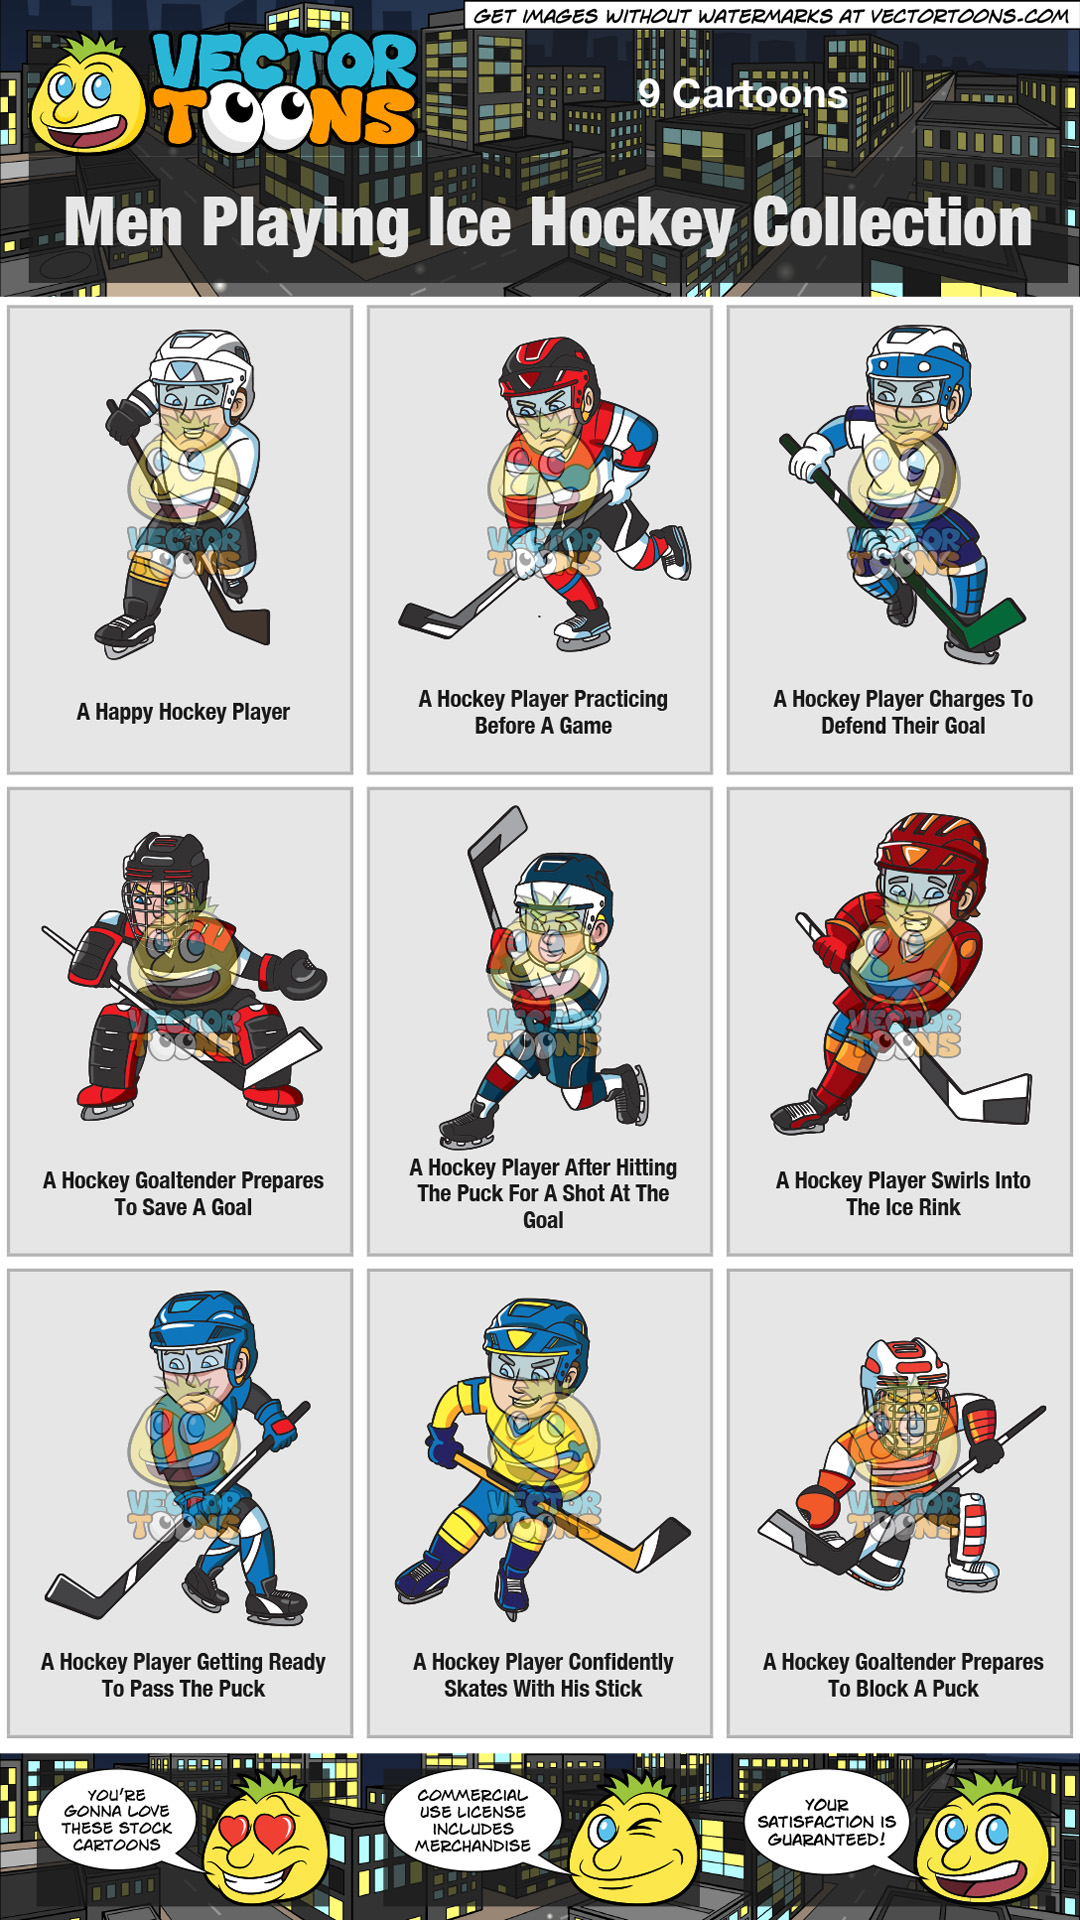 Men Playing Ice Hockey Collection thumbnail